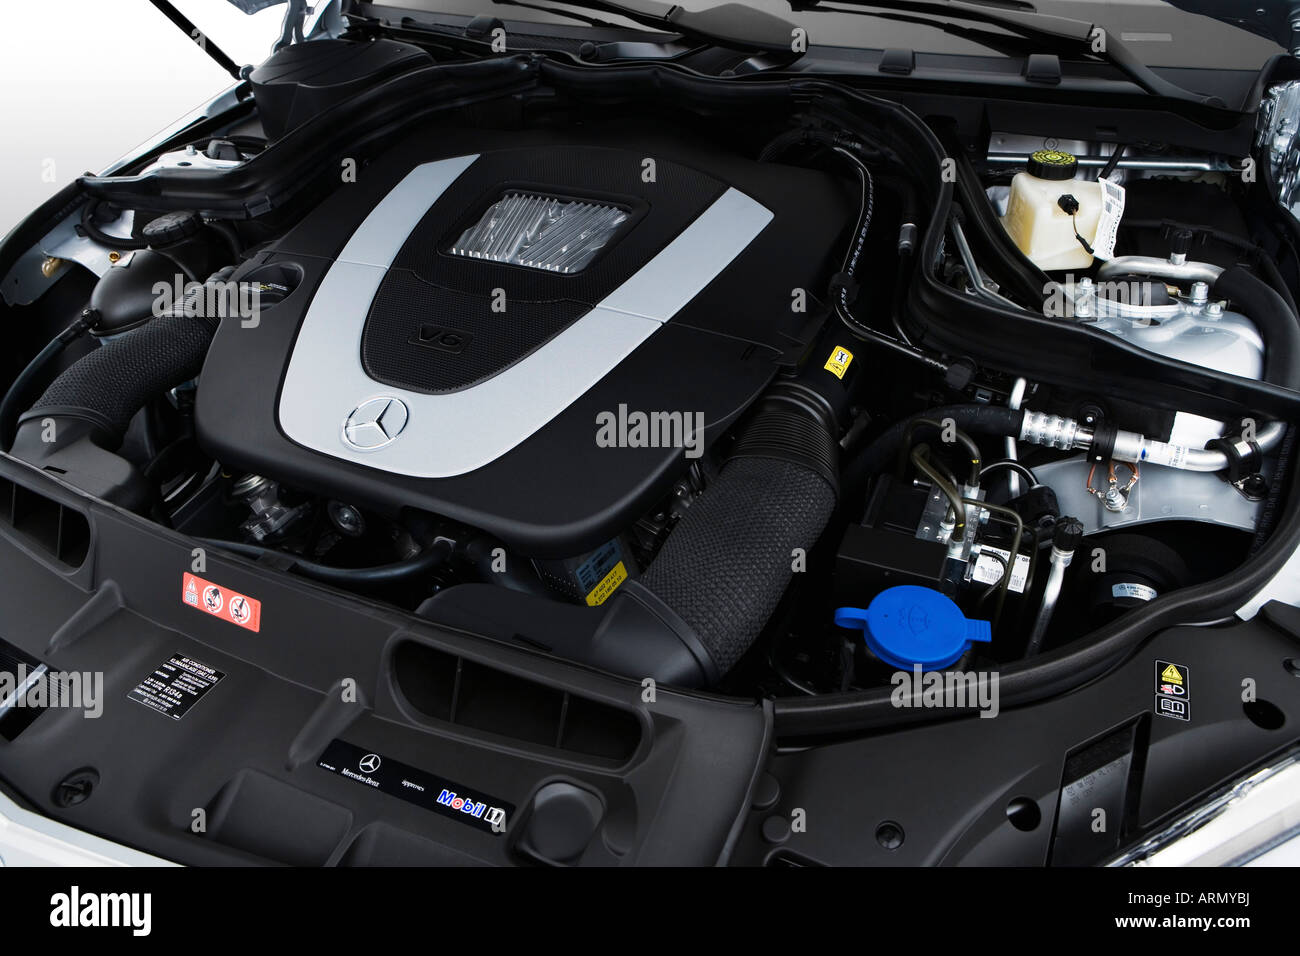 hight resolution of 2008 mercedes benz c class c300 in silver engine